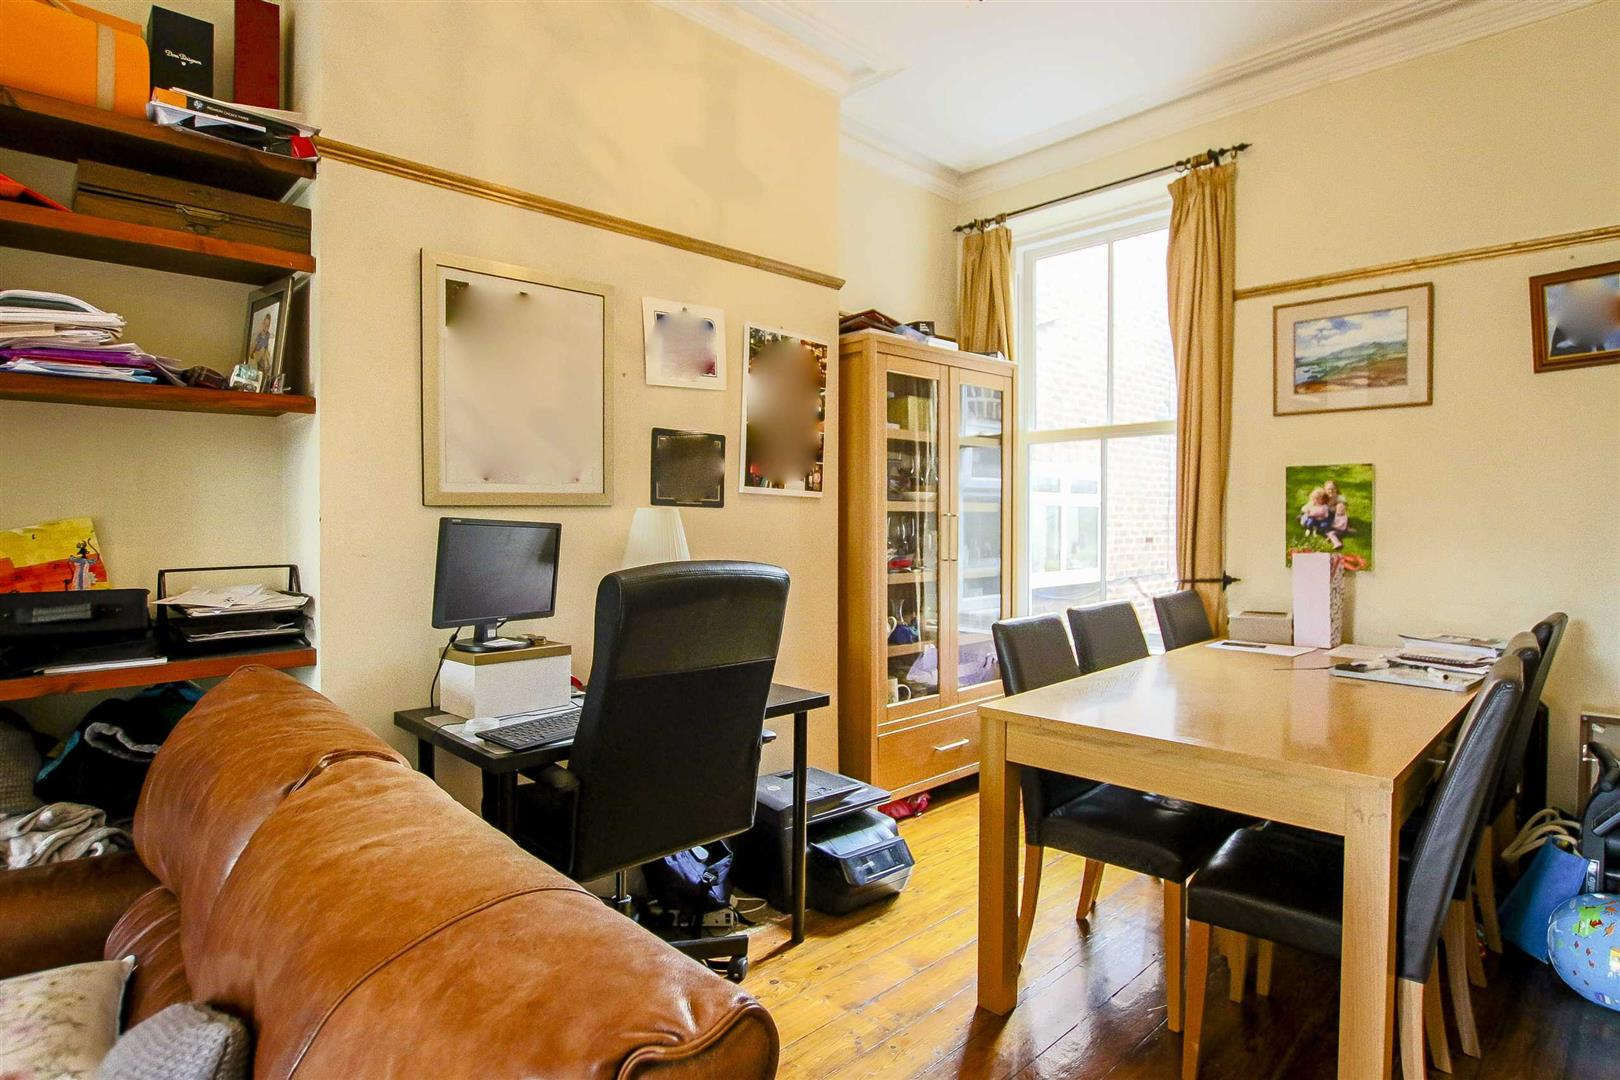 5 Bedroom Terraced House For Sale - Image 8